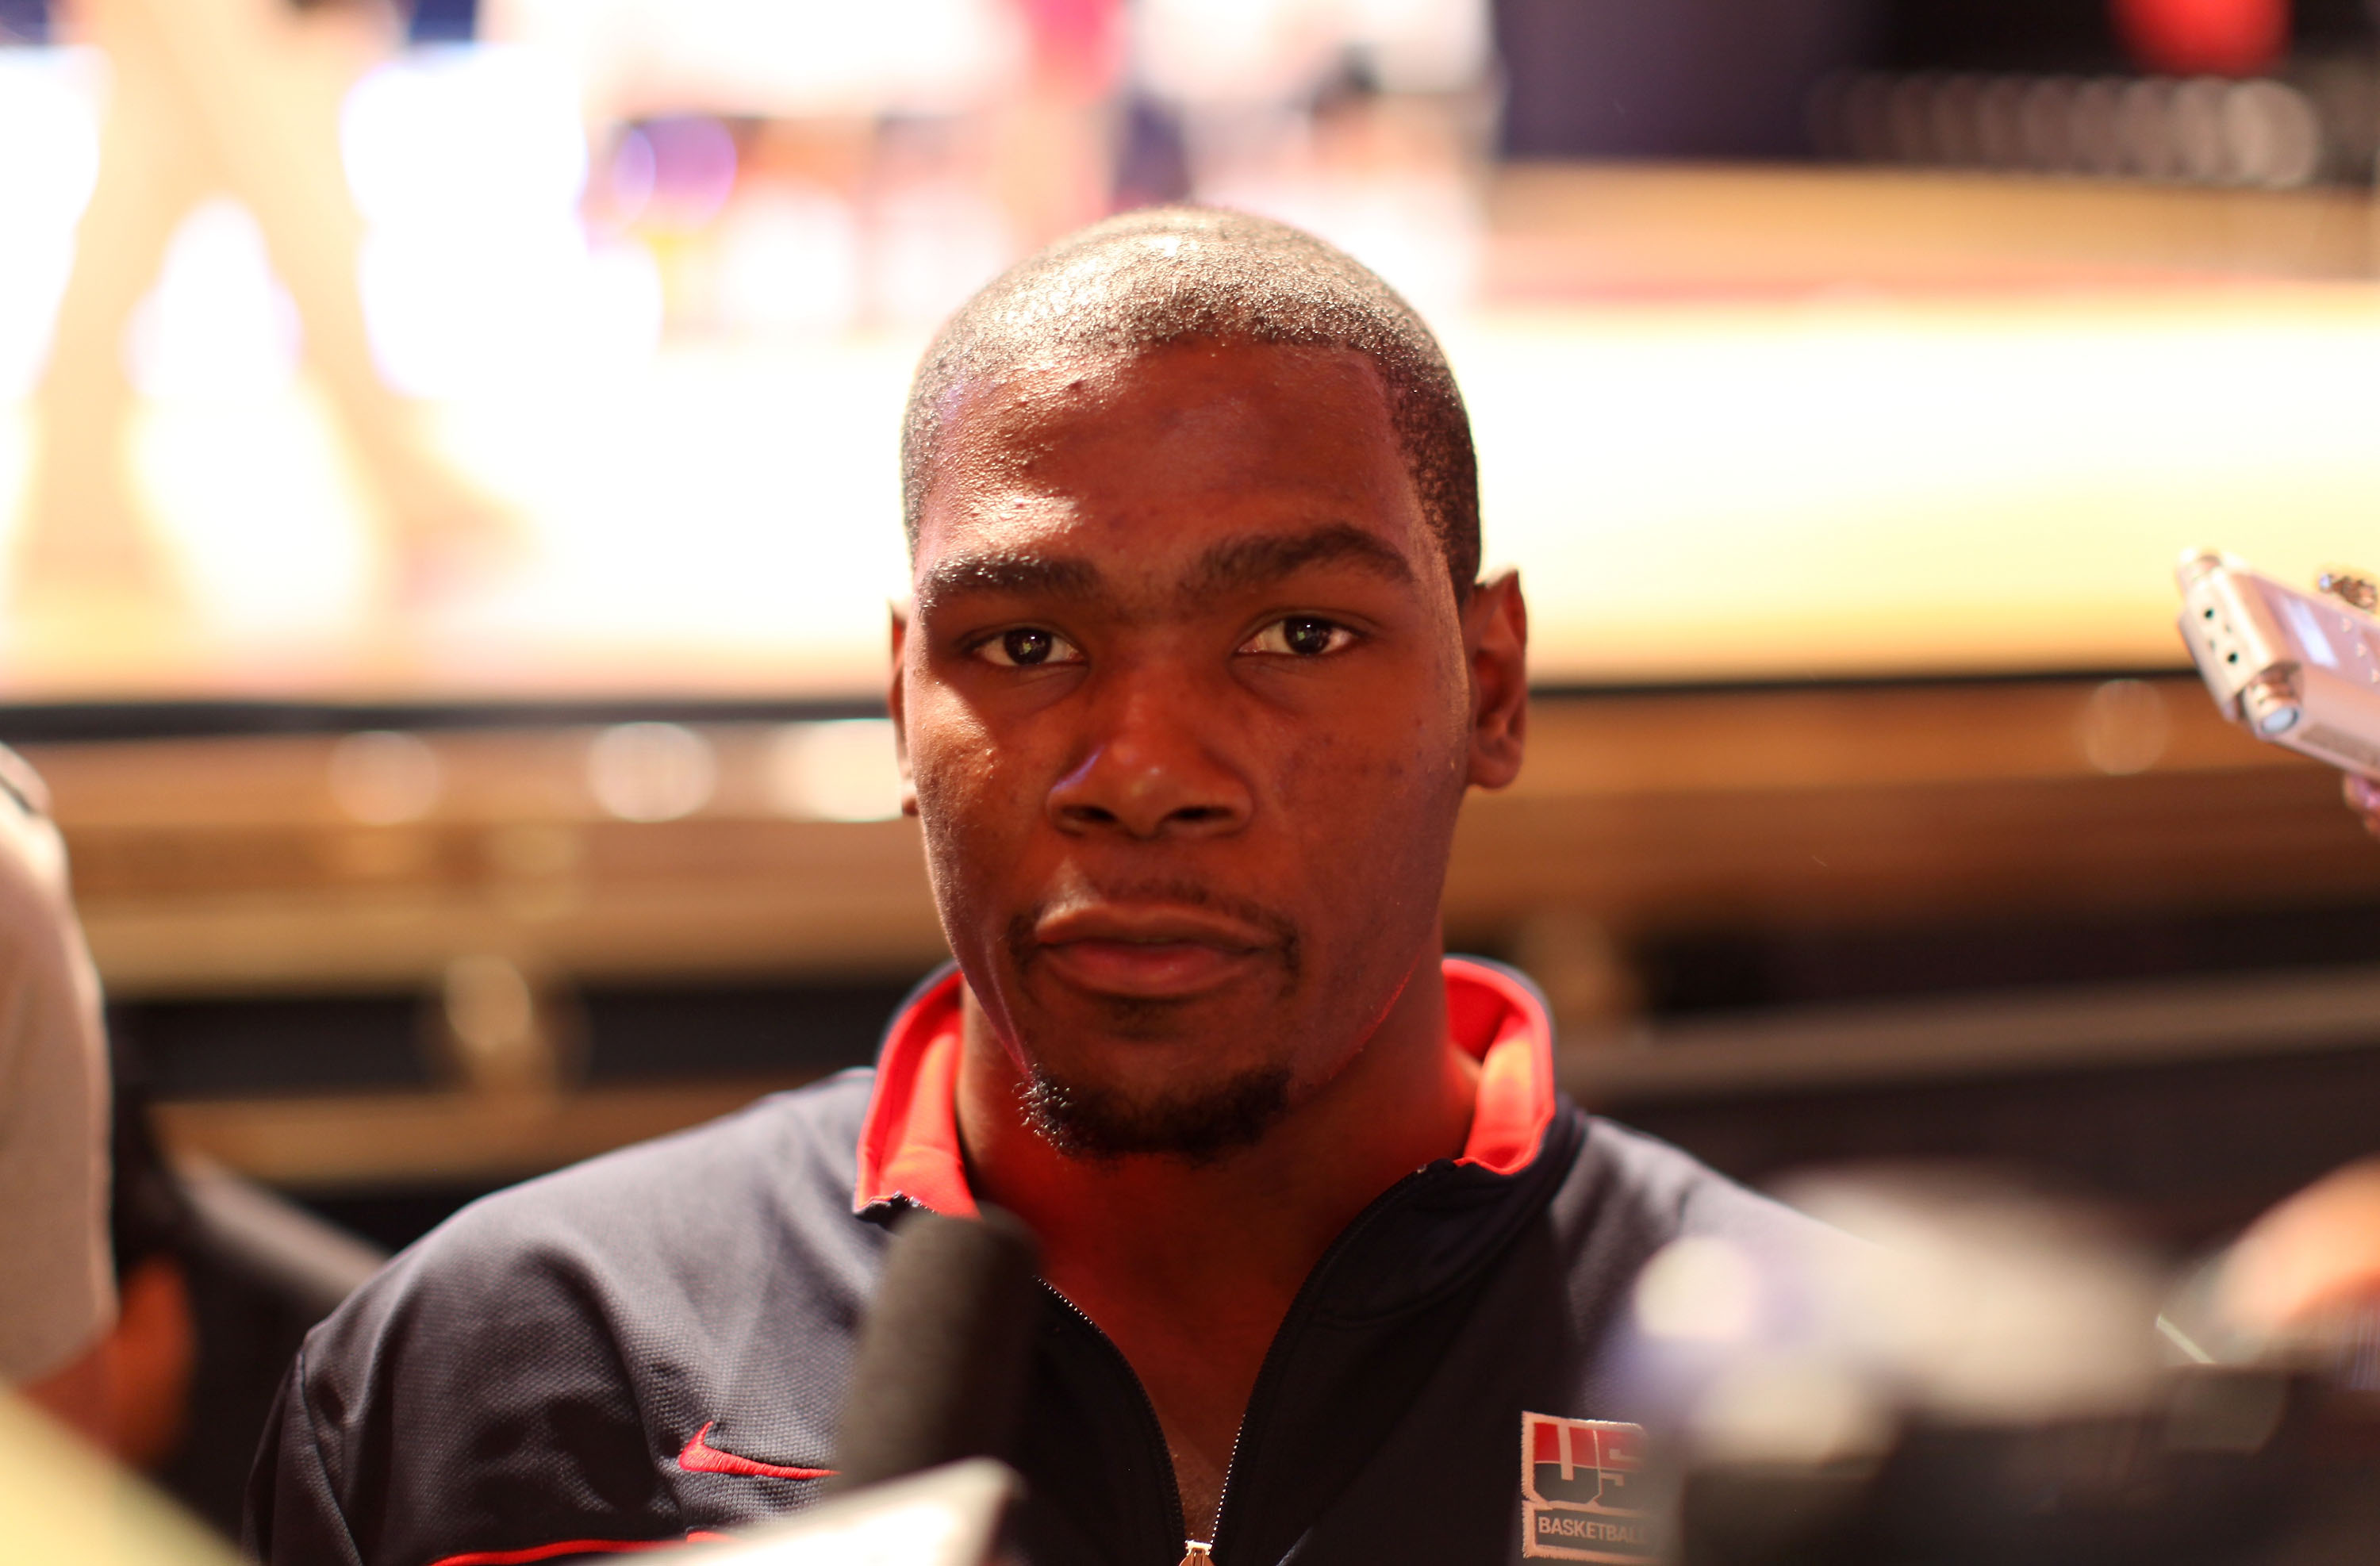 NEW YORK CITY, NY - AUGUST 12:  Kevin Durant of USAB is interviewed during the World Basketball Festival Community Morning at Radio City Music Hall on August 12, 2010 in New York, New York.  (Photo by Marc Lecureuil/Getty Images for Nike)